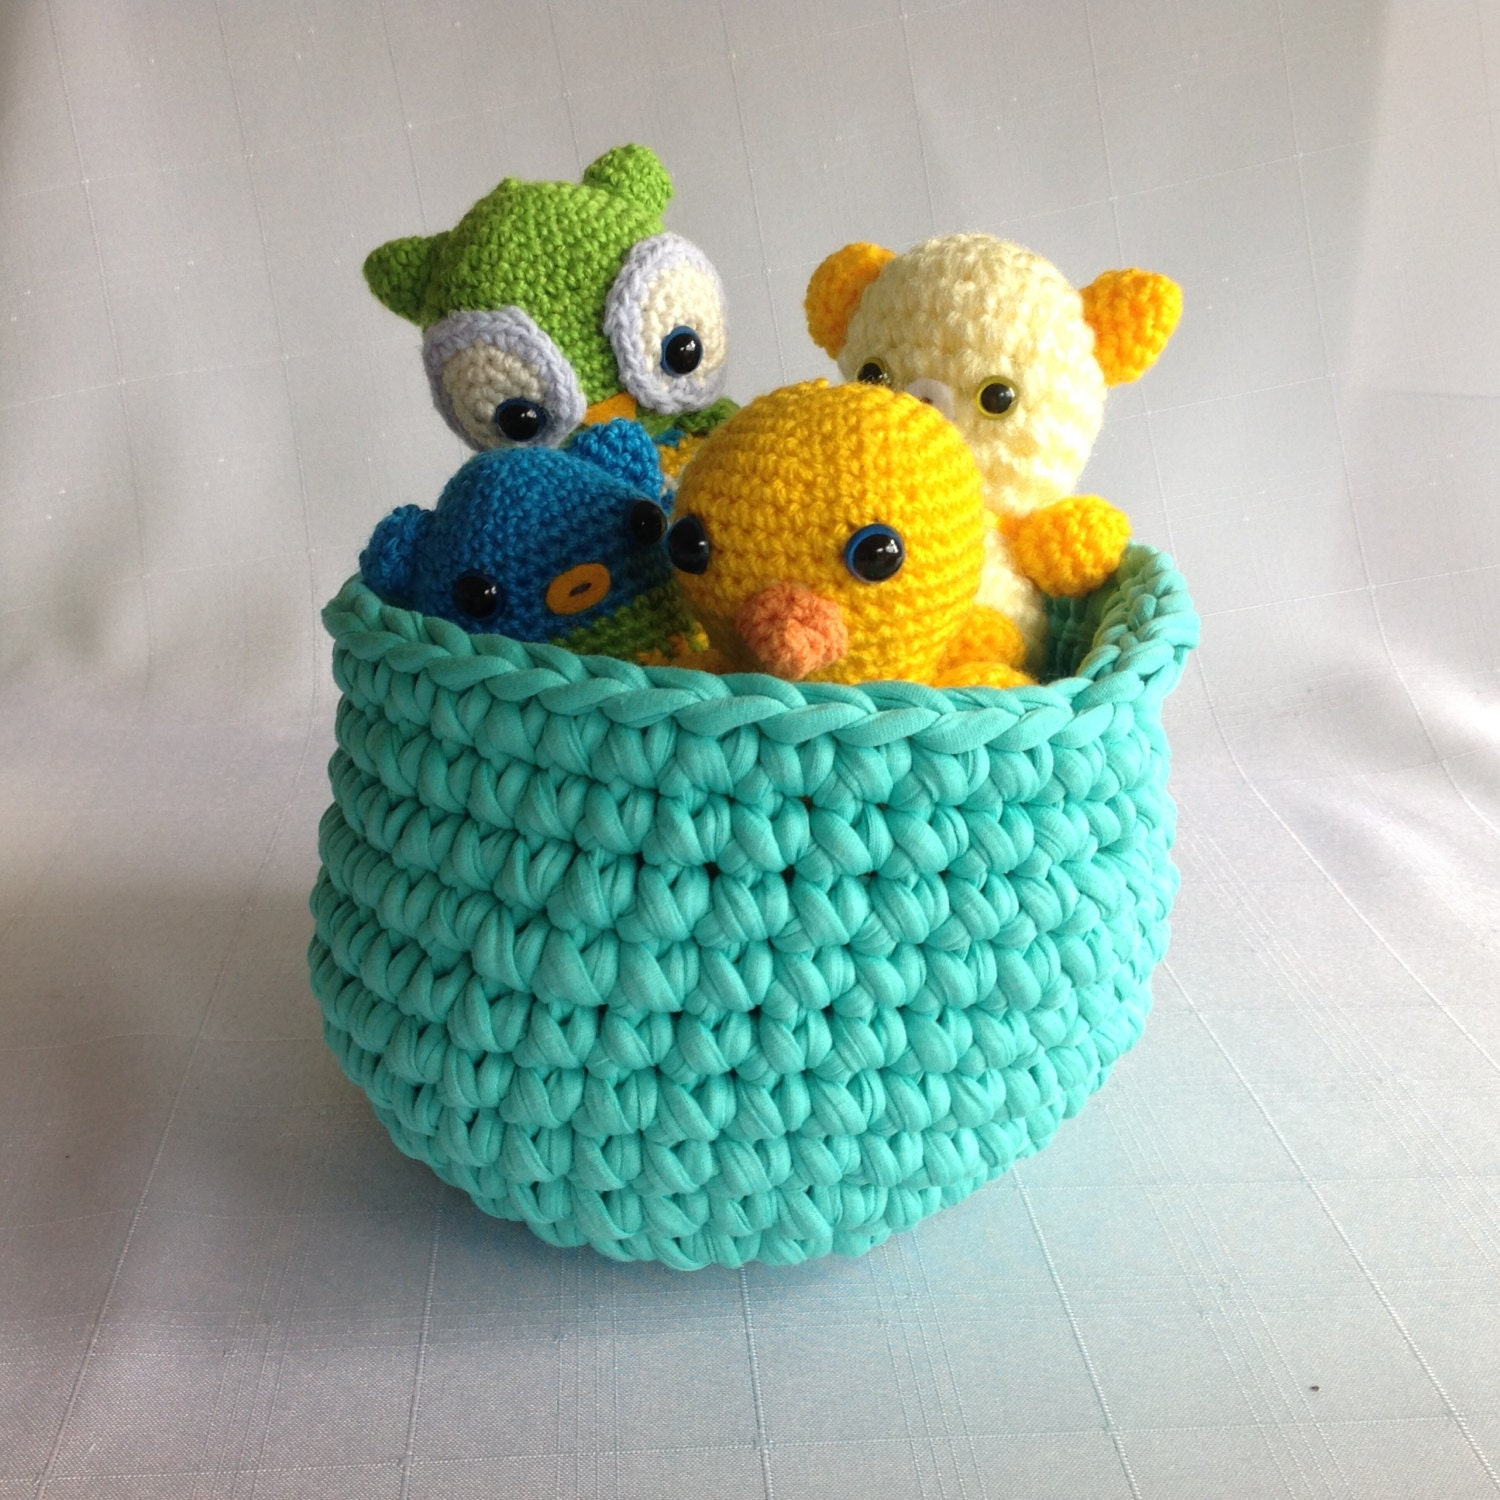 Small Crochet Teal Basket. Small Round Storage Bowl. Ideas